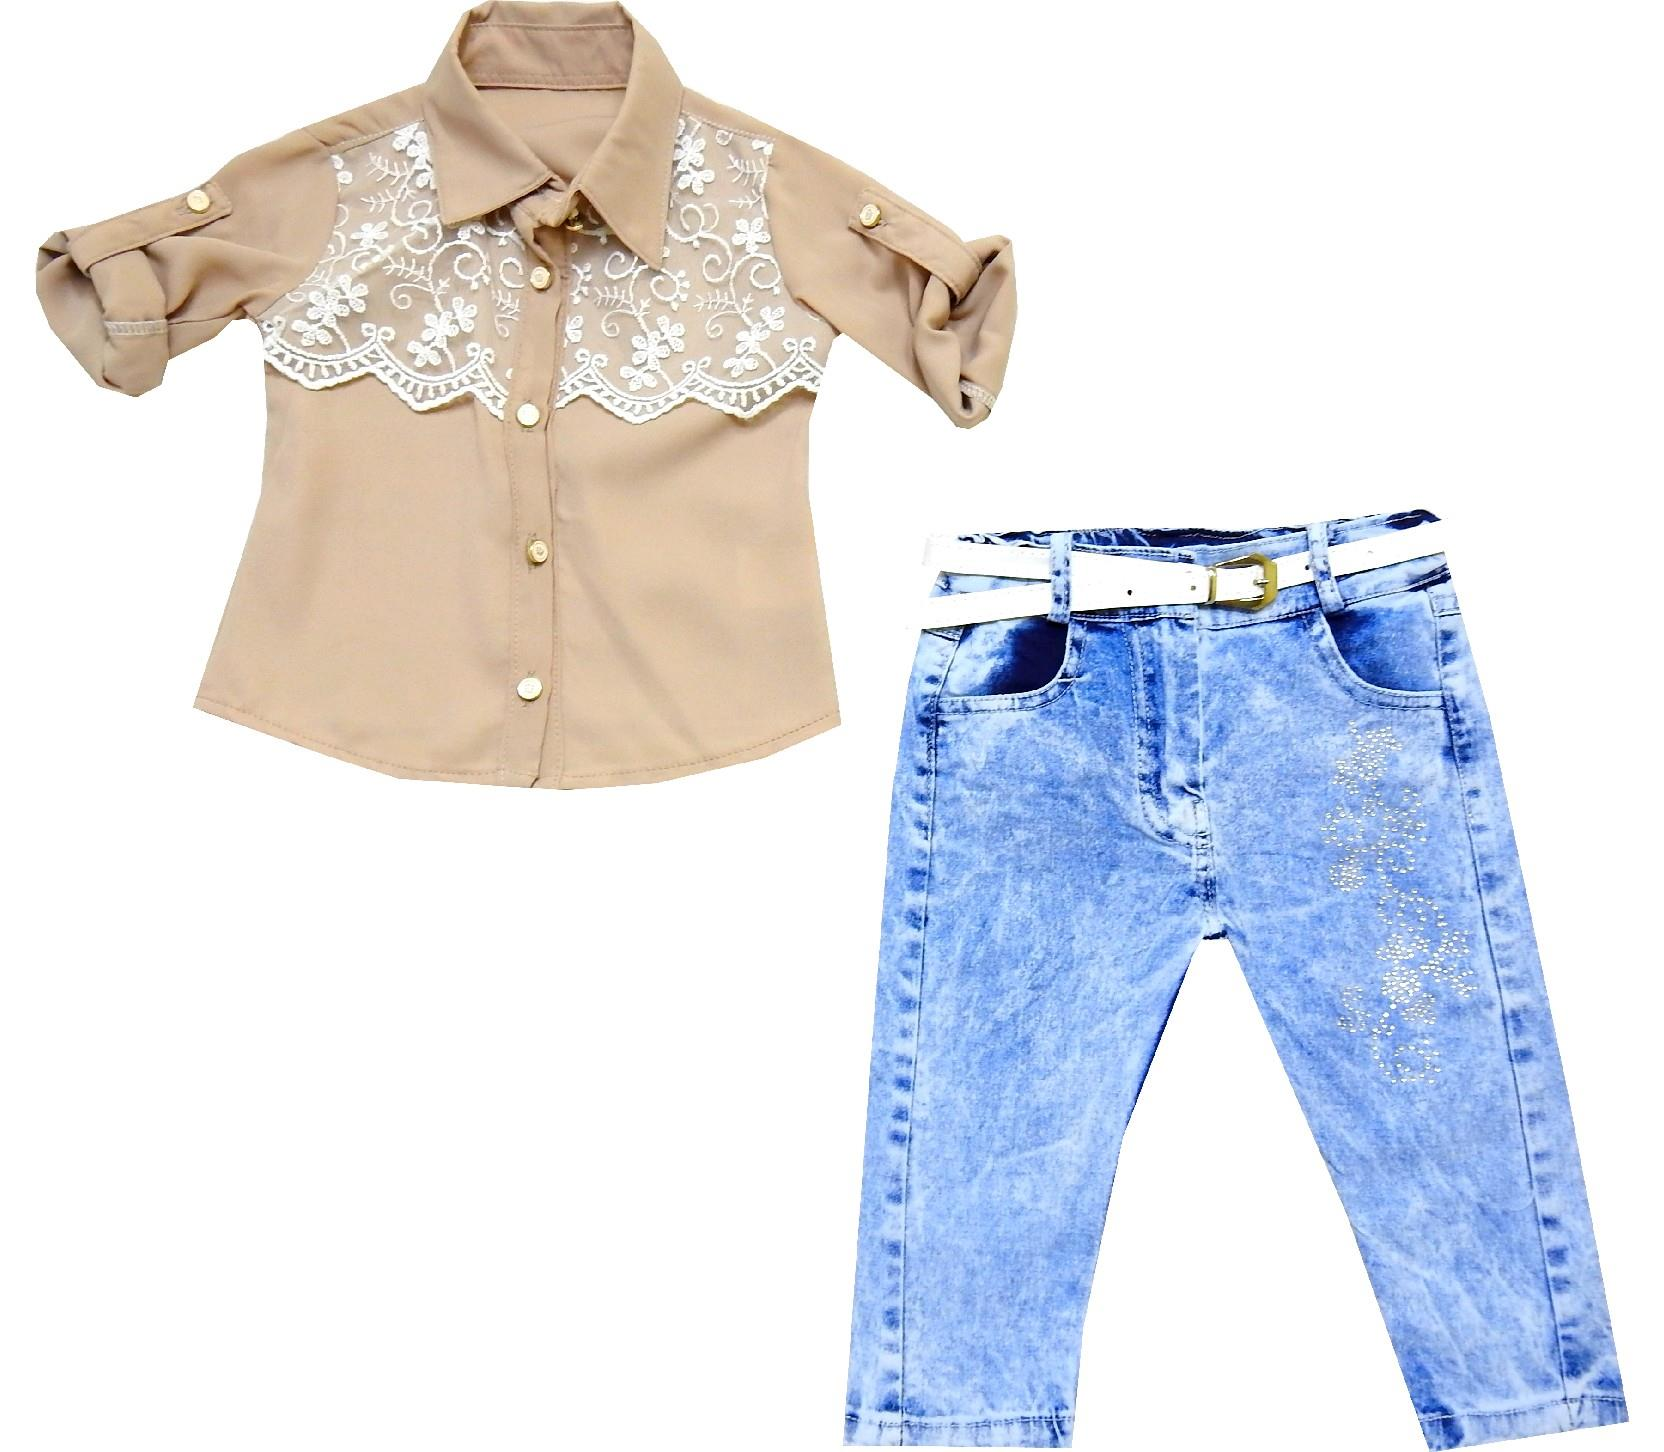 WHOLESALE LACE FABRIC EMBROIDERELY BLOUSE AND JEANS DOUBLE SET FOR GIRL (1-2-3-4 AGE)